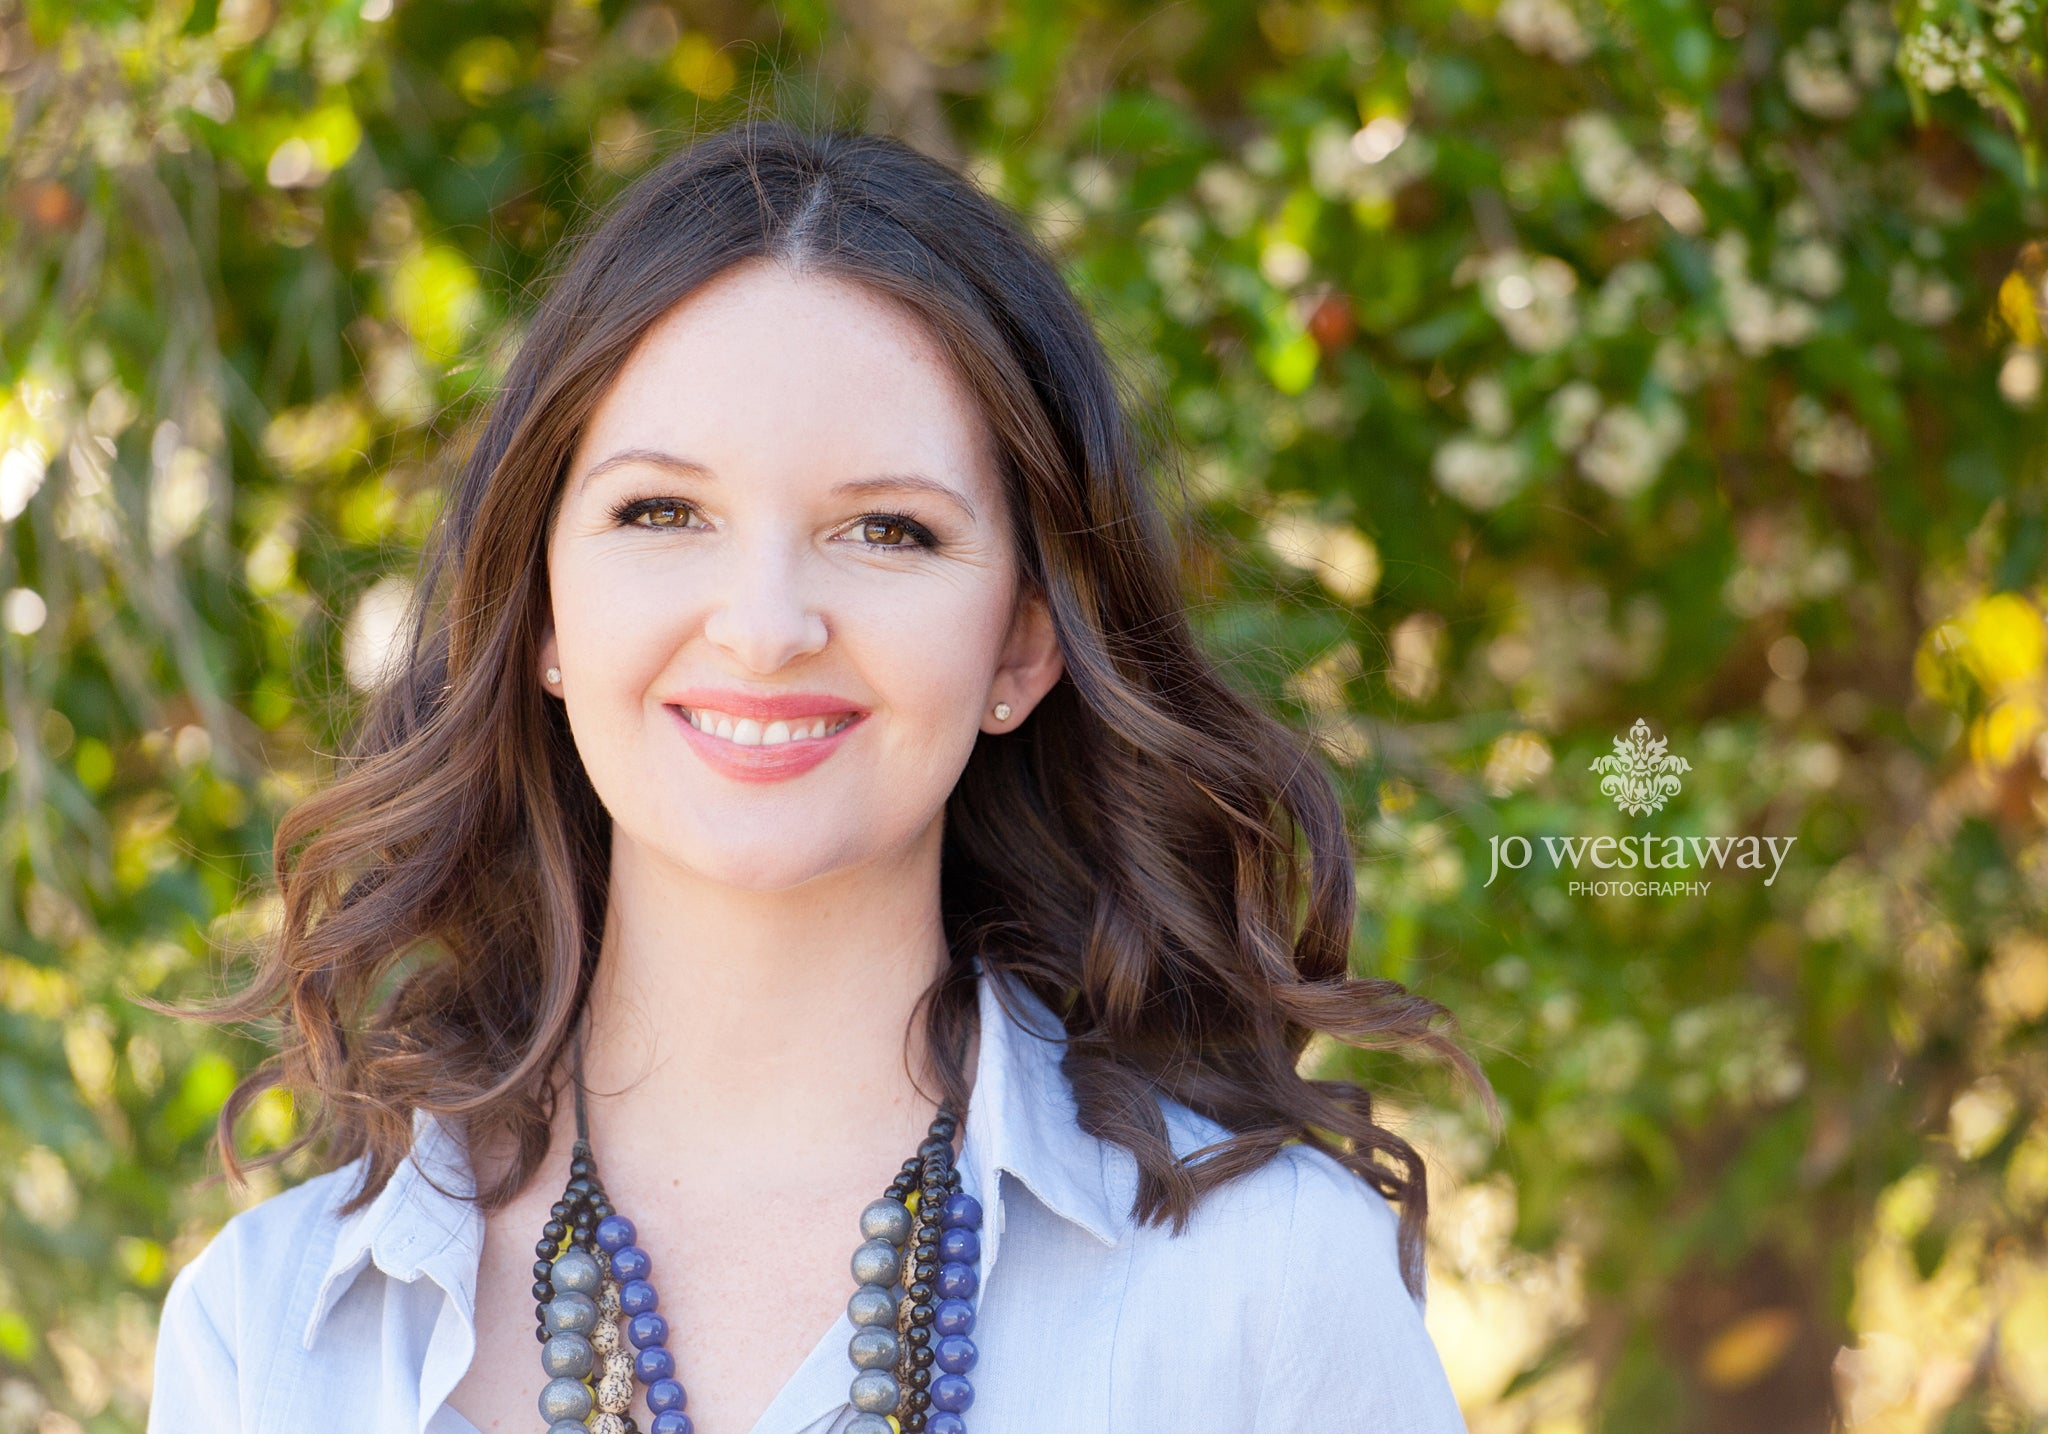 Lifestyle business photos for businesswomen, entrepreneurs and professionals - the modern headshot